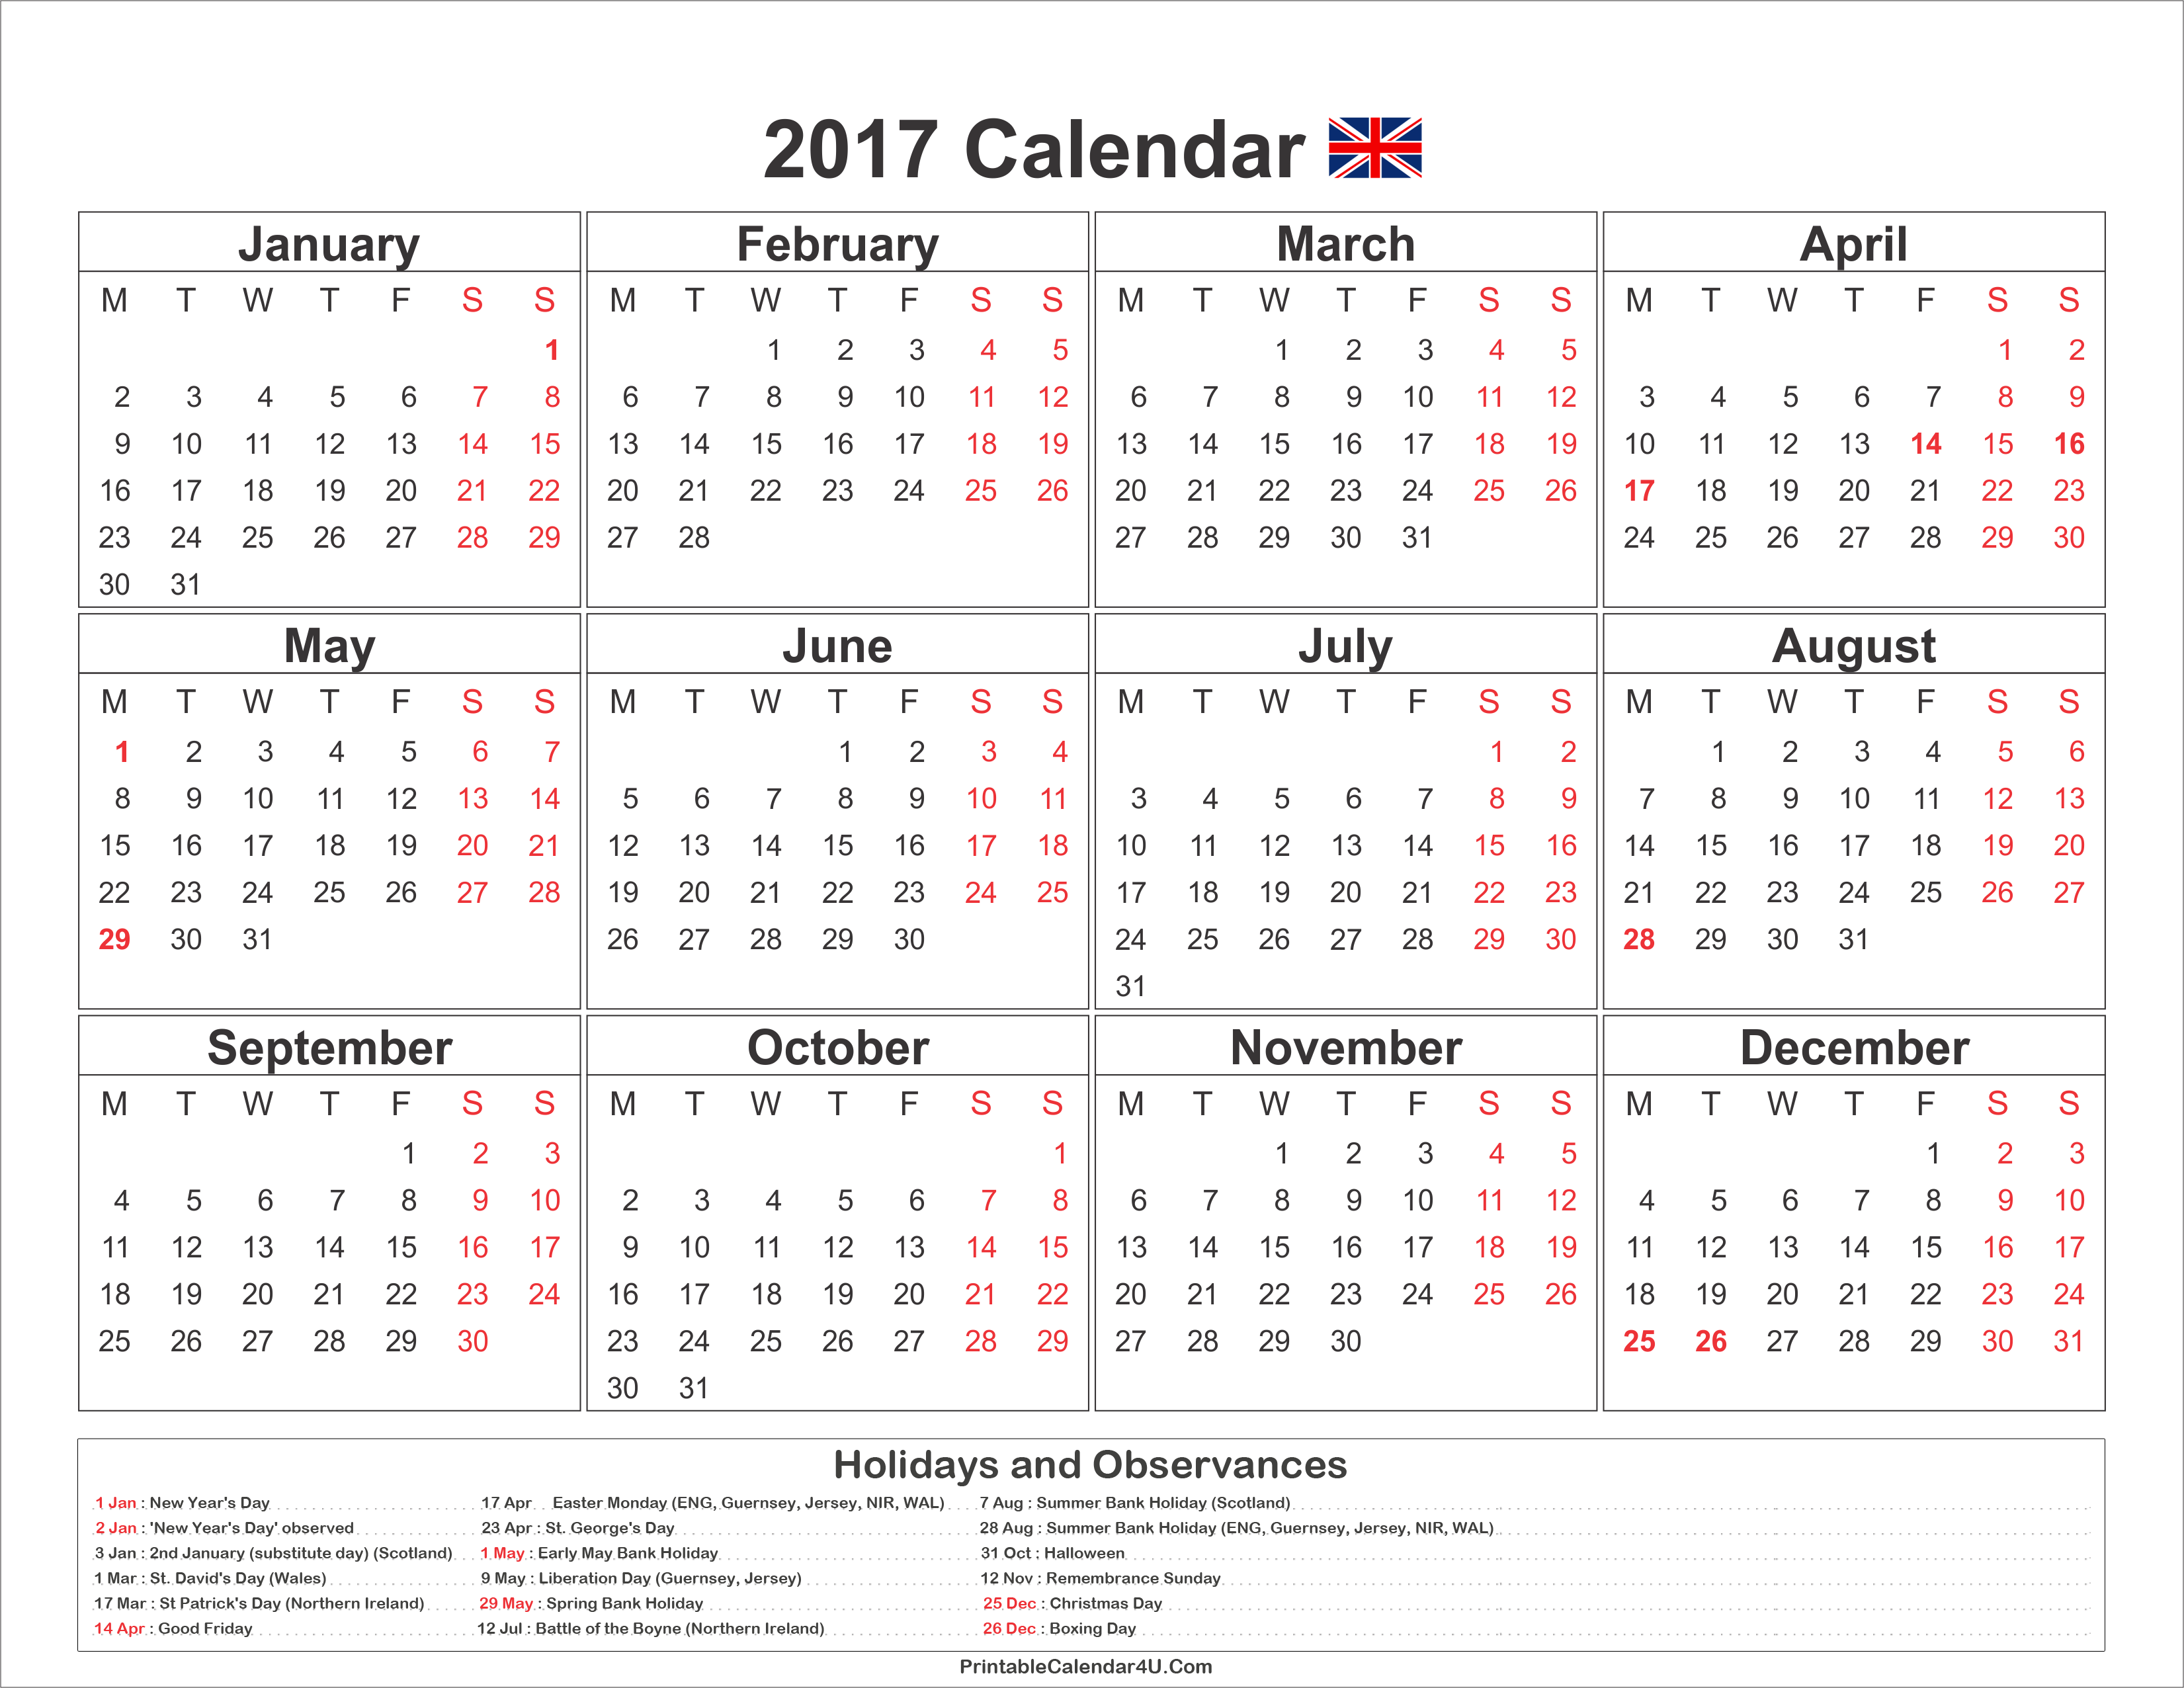 Calendar 2017 With Holidays : Calendar uk with holidays free printable